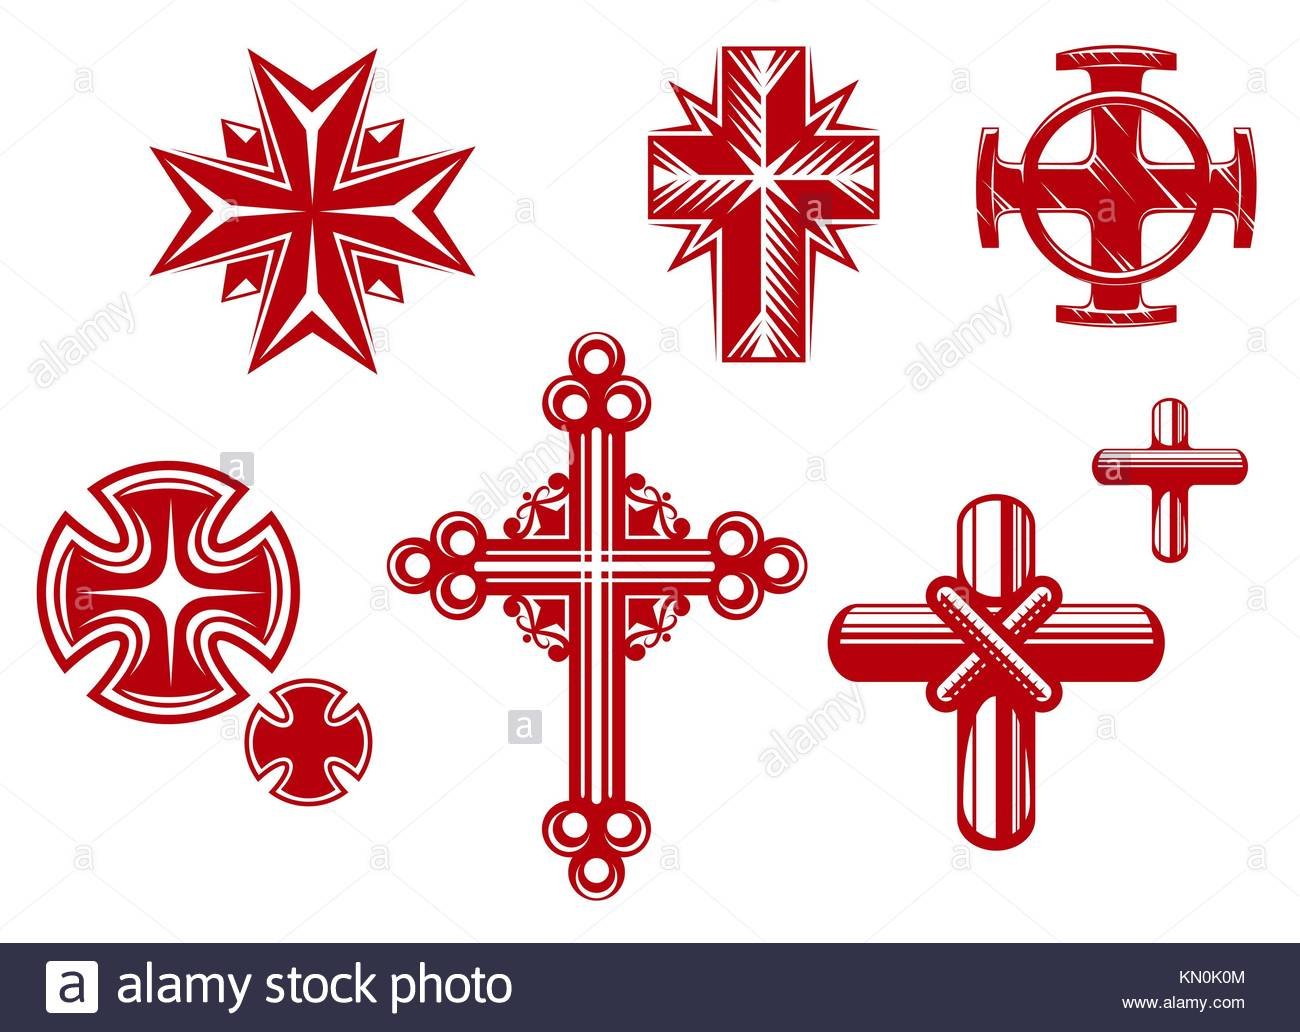 Christian Illustration Cut Out Stock Images & Pictures - Alamy